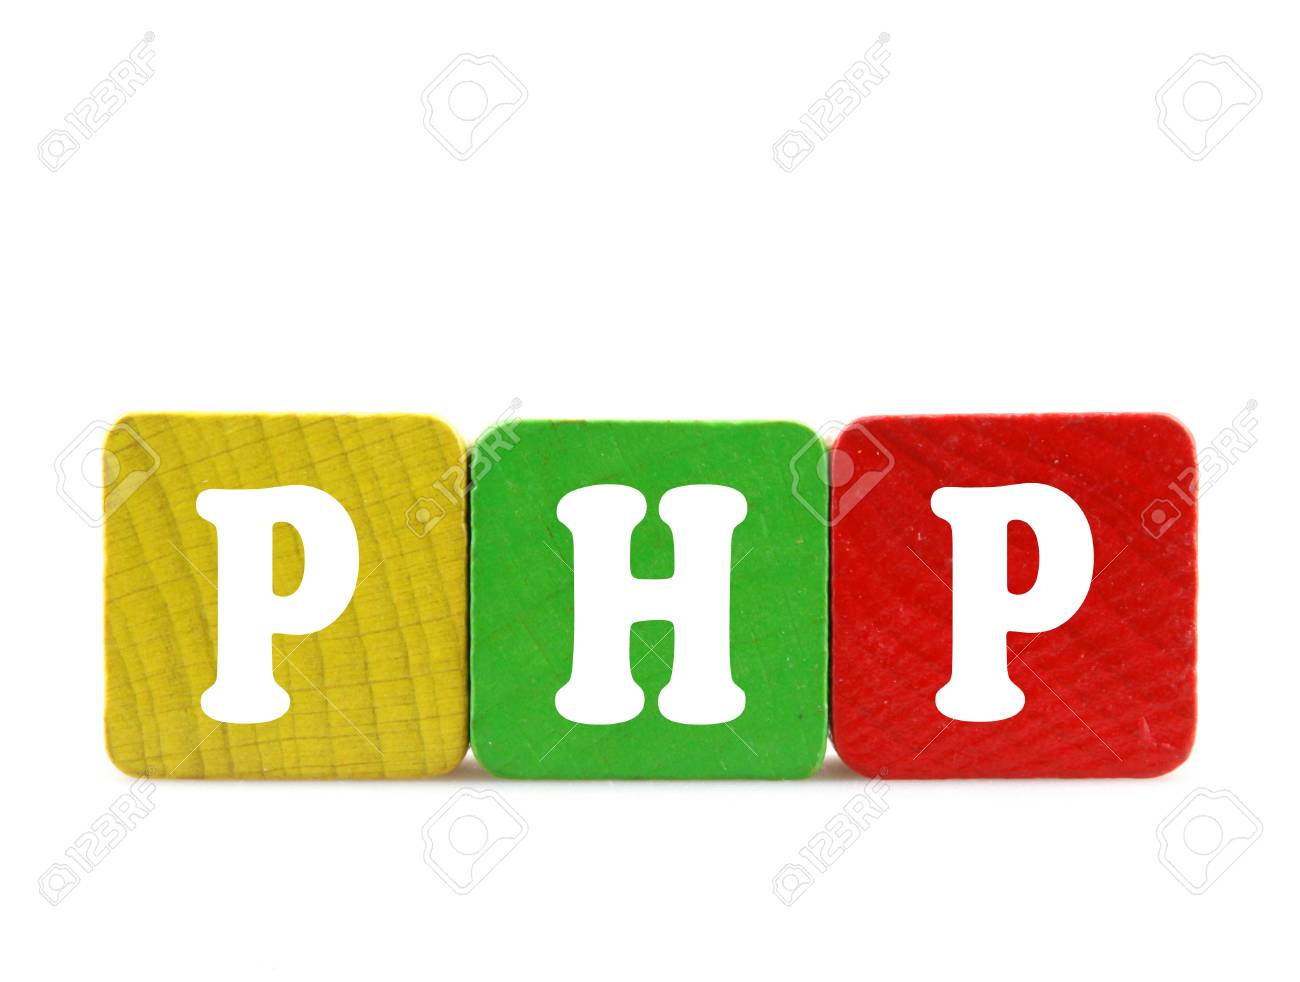 php  - isolated text in wooden building blocks Stock Photo - 18525450